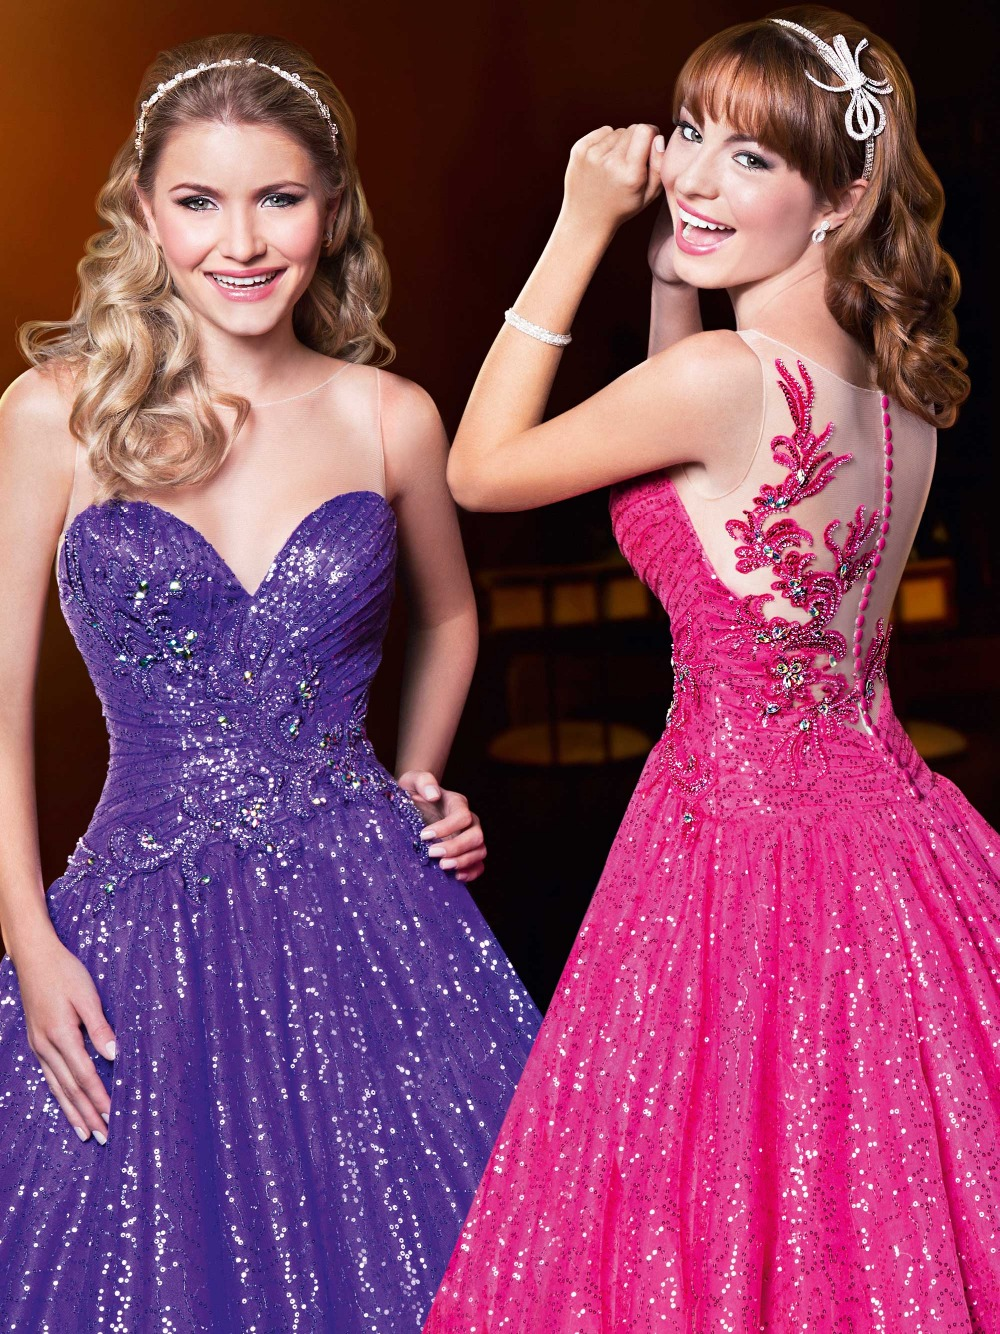 Pristian Zouboutin Ball Gown Sequined Lace Prom Crystal Decoration Long Plus Size Vestidos De Baile Mother Of The Bride Dresses